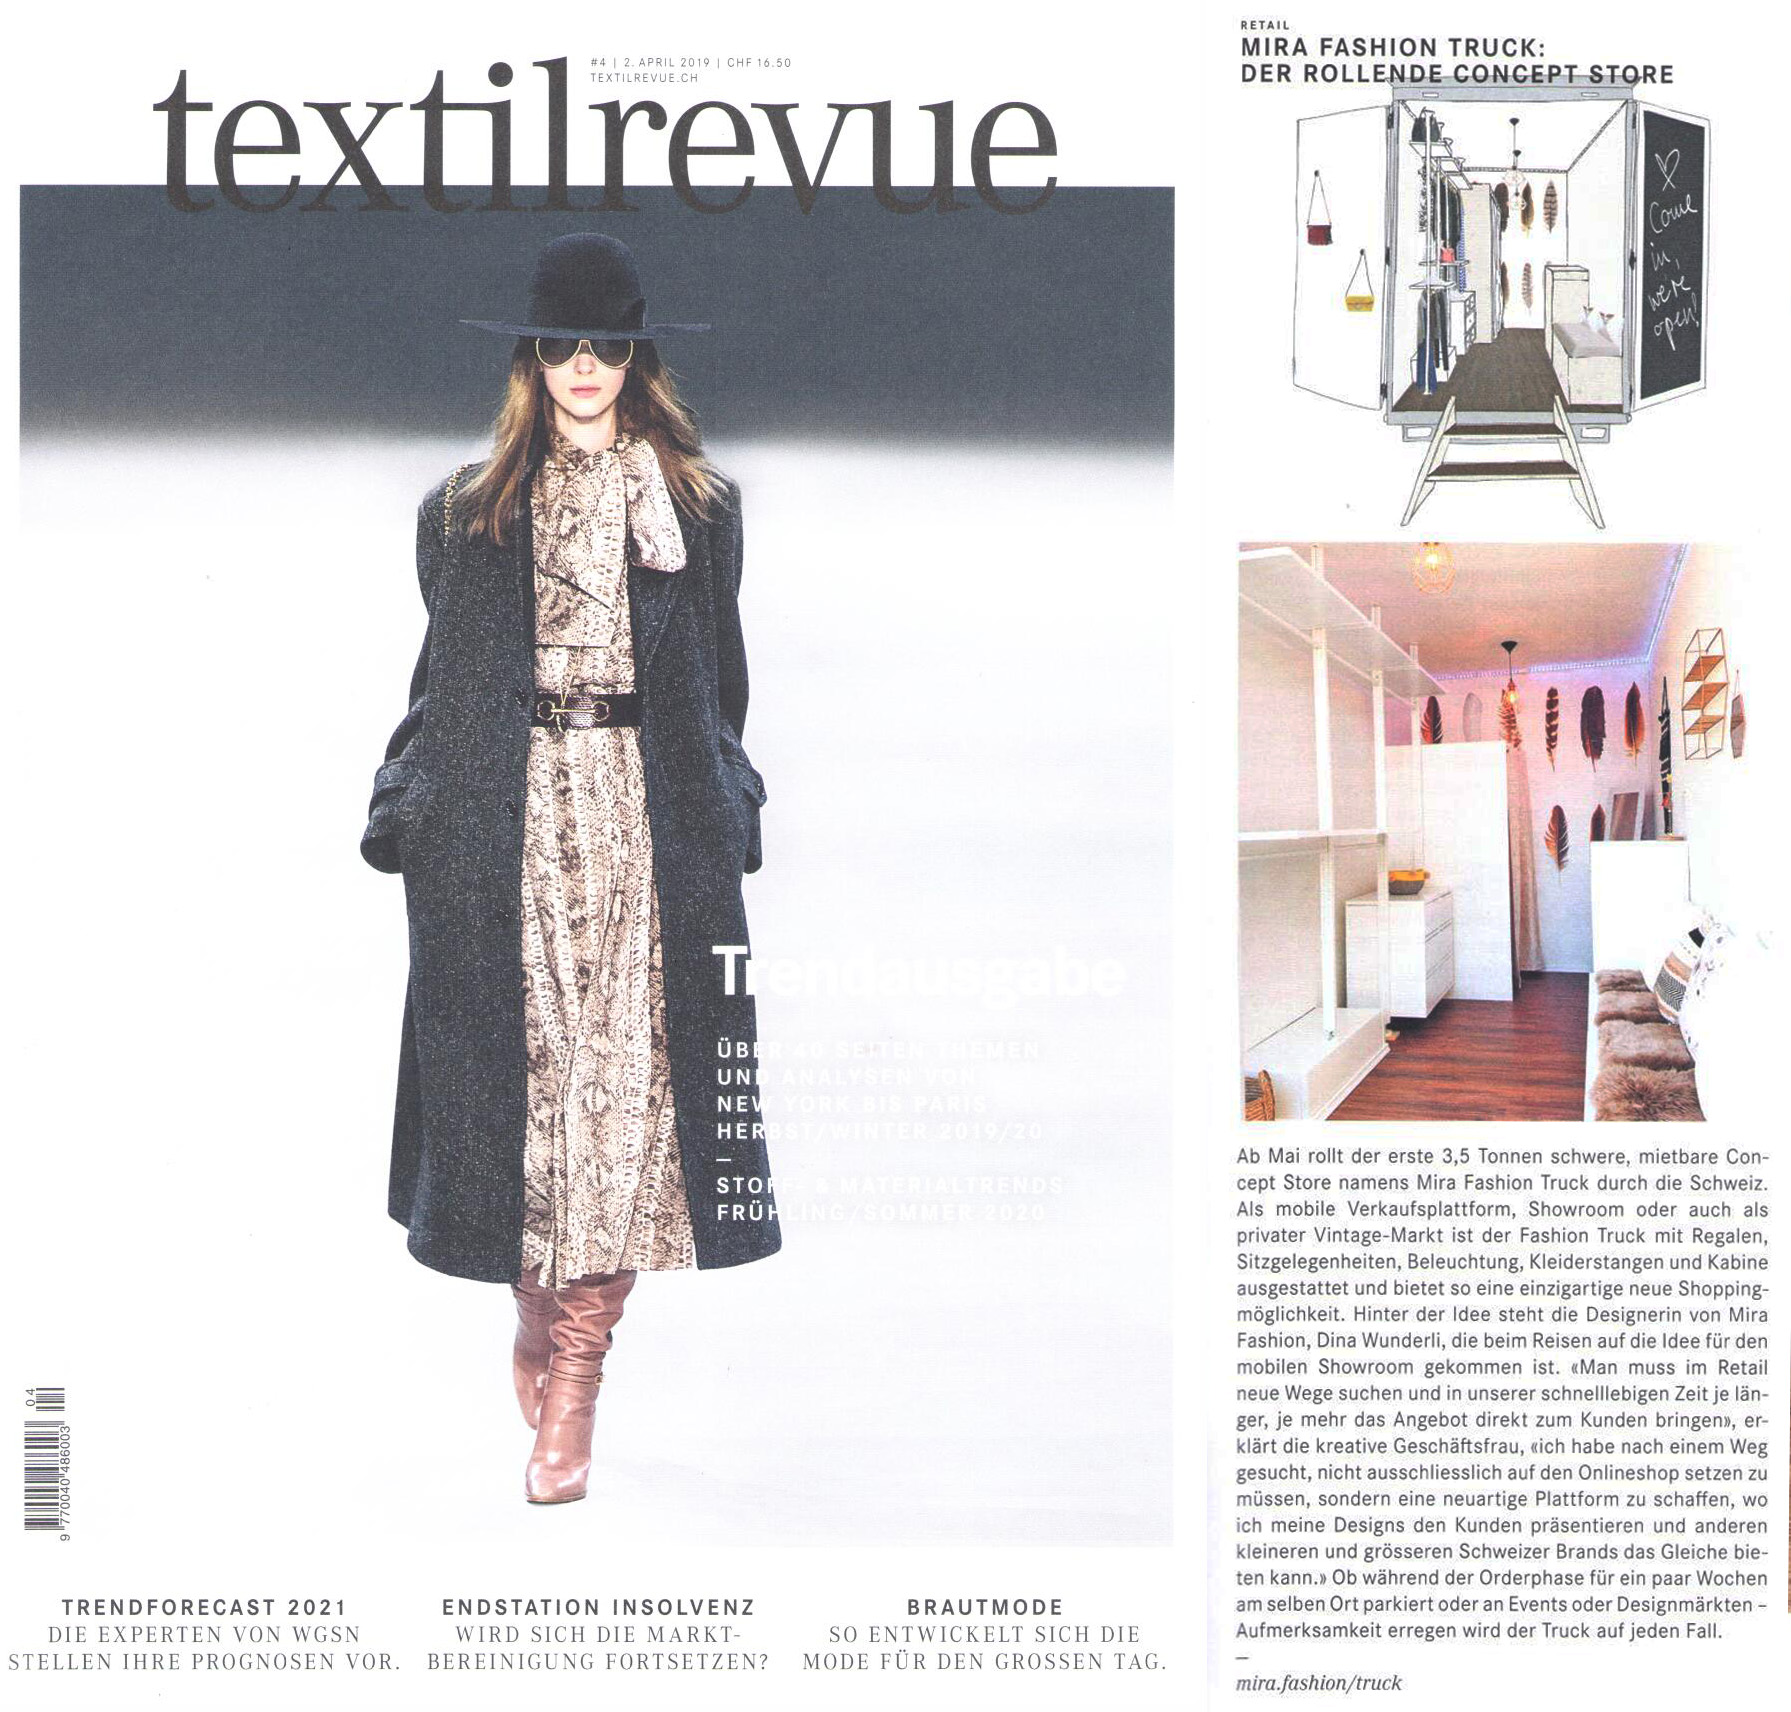 Clipping Textilrevue_Mira Fashion Truck.